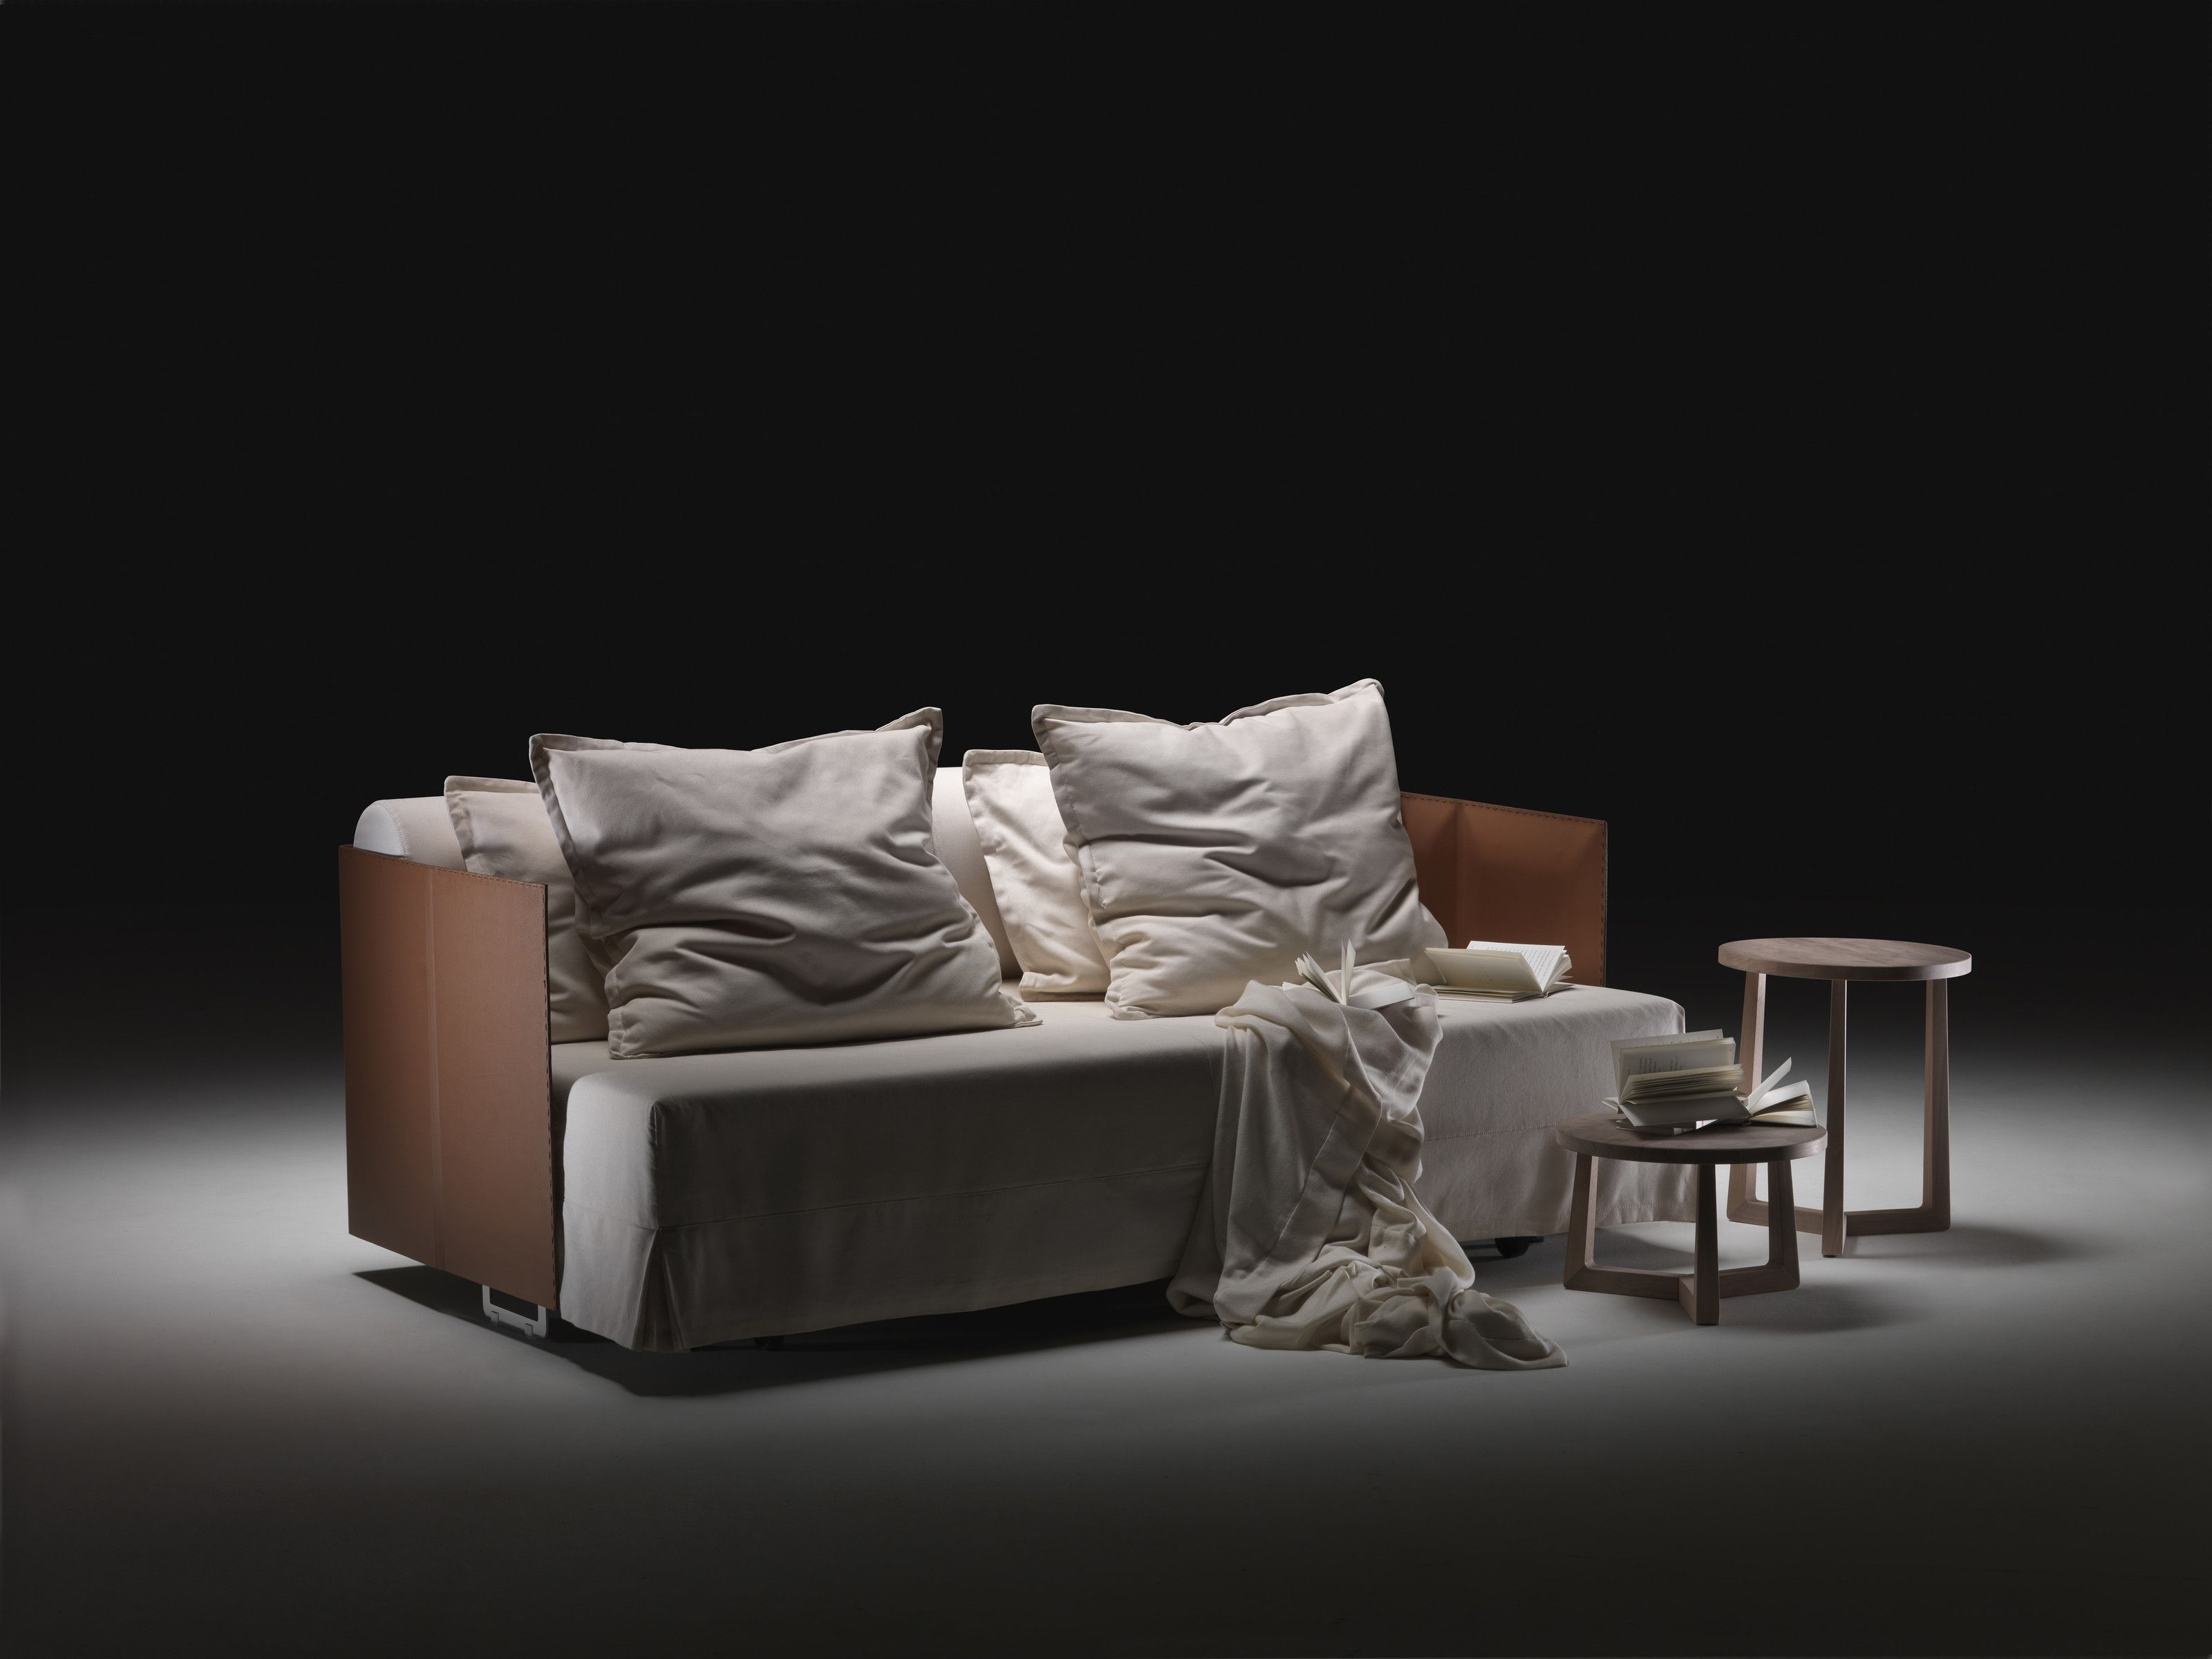 Divano Letto Moderno Flexform.Flexform Flexform Gallery Luxury Furniture Sofa Bed